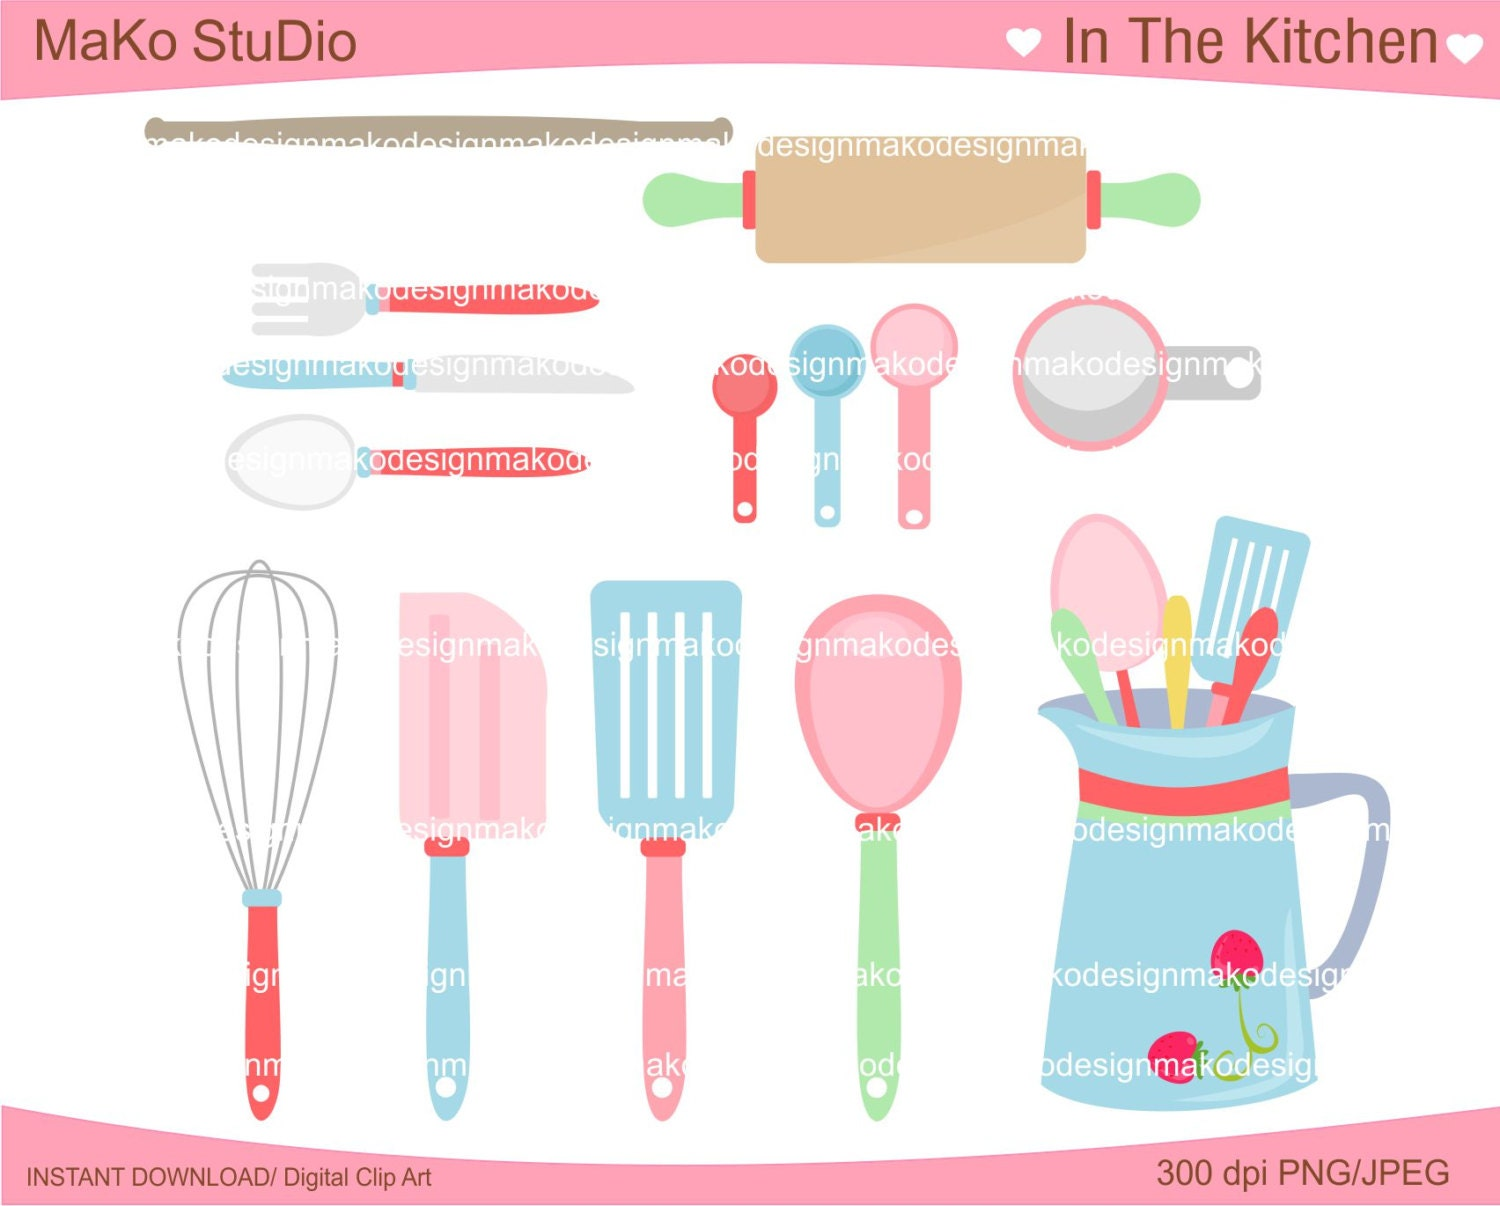 Baking Clip Art Digital Clip Art Cooking Utensil Clip Art Kitchen -  kitchen digital clip art jpeg png format instant download sold by makostudio this is a digital file